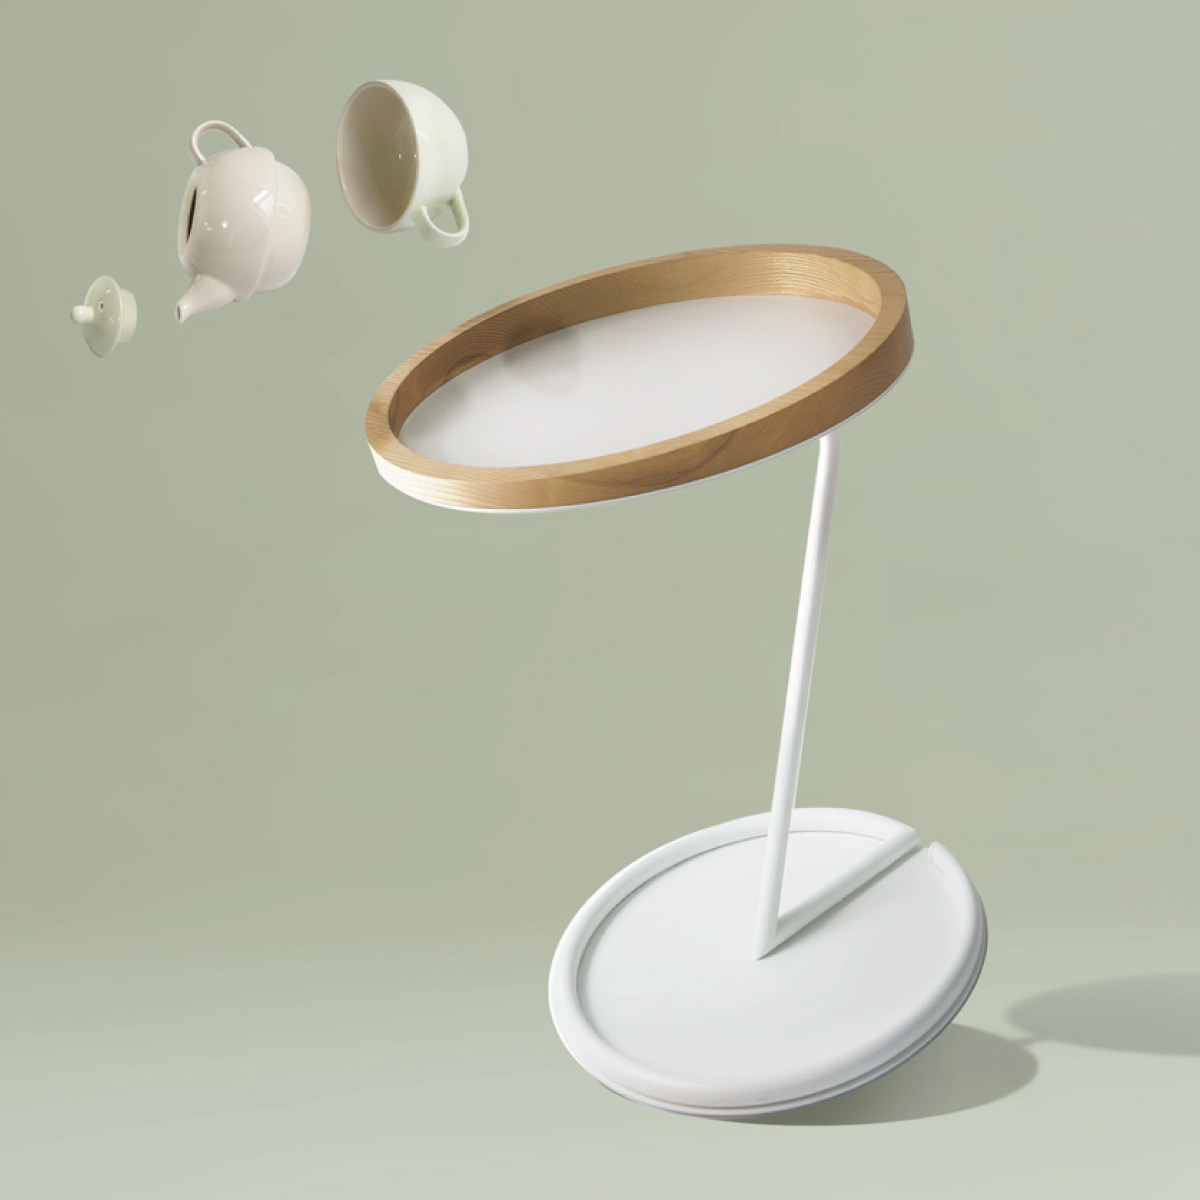 Obelia side table with a teapot and cup falling off the table